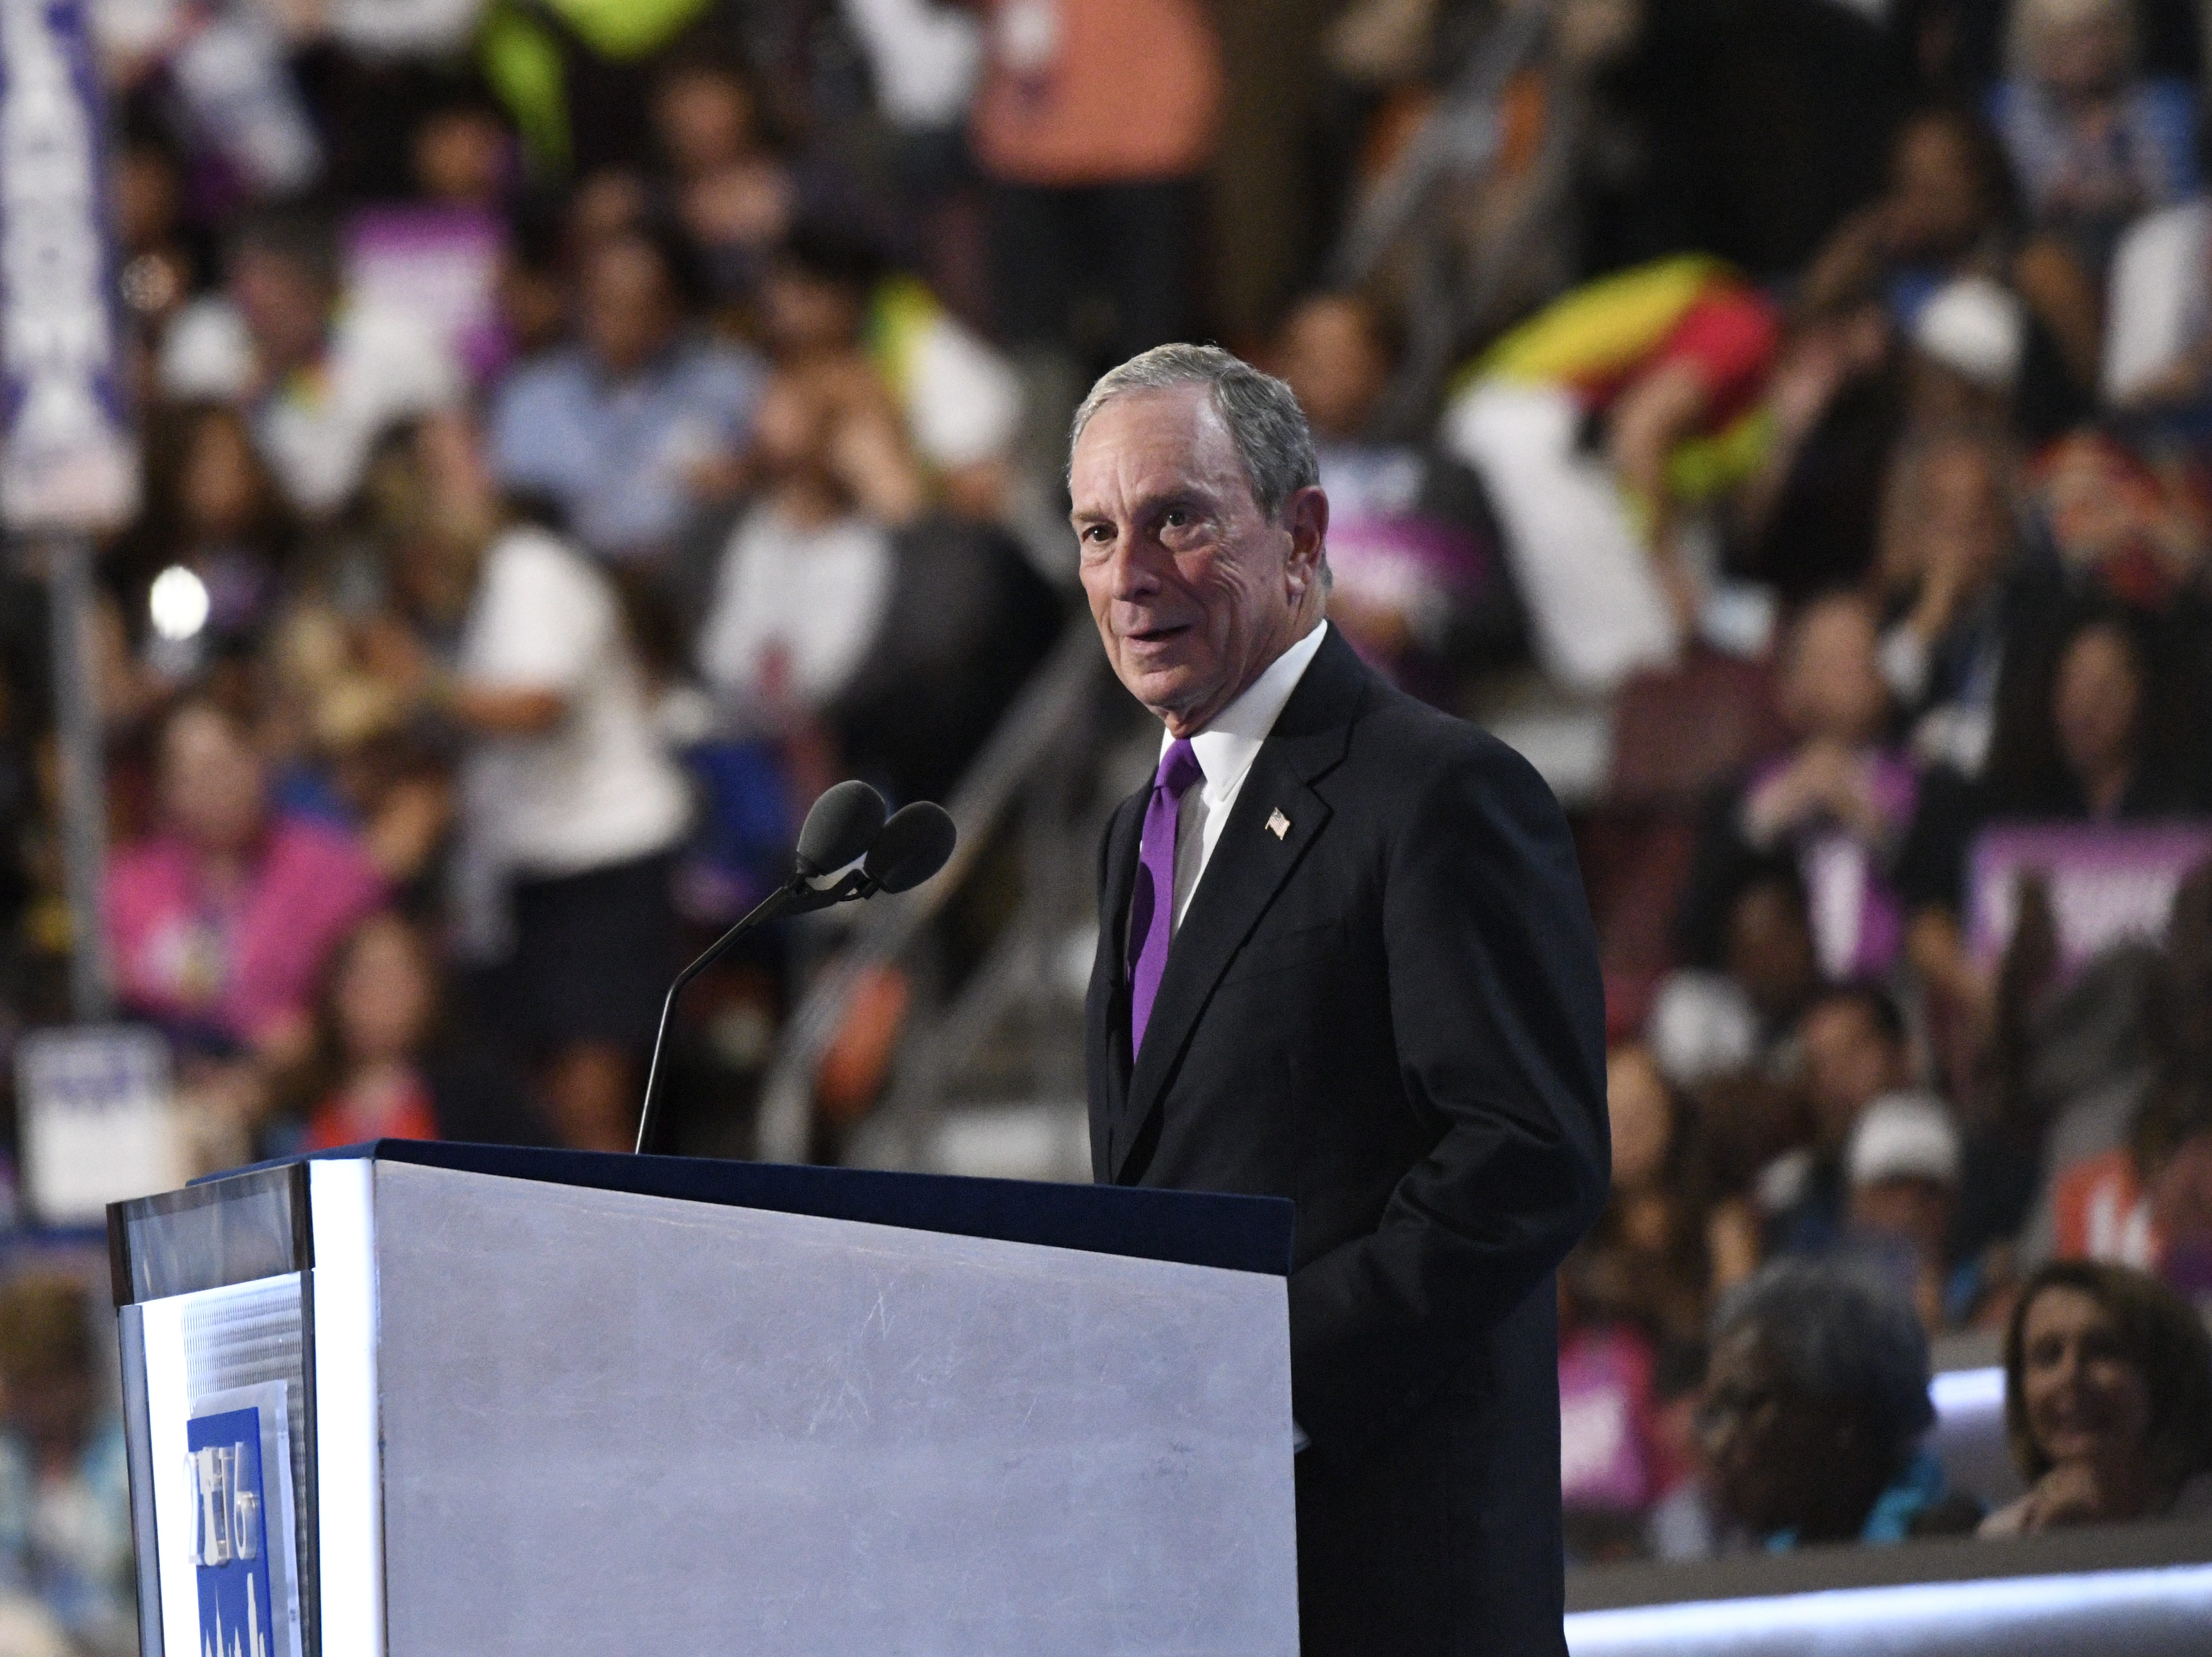 Michael Bloomberg (Washington D.C.): Founder and Chief Executive Officer of Bloomberg L.P. Served three terms as Mayor of the City of New York. Recognized as one of the nation's leading philanthropists.